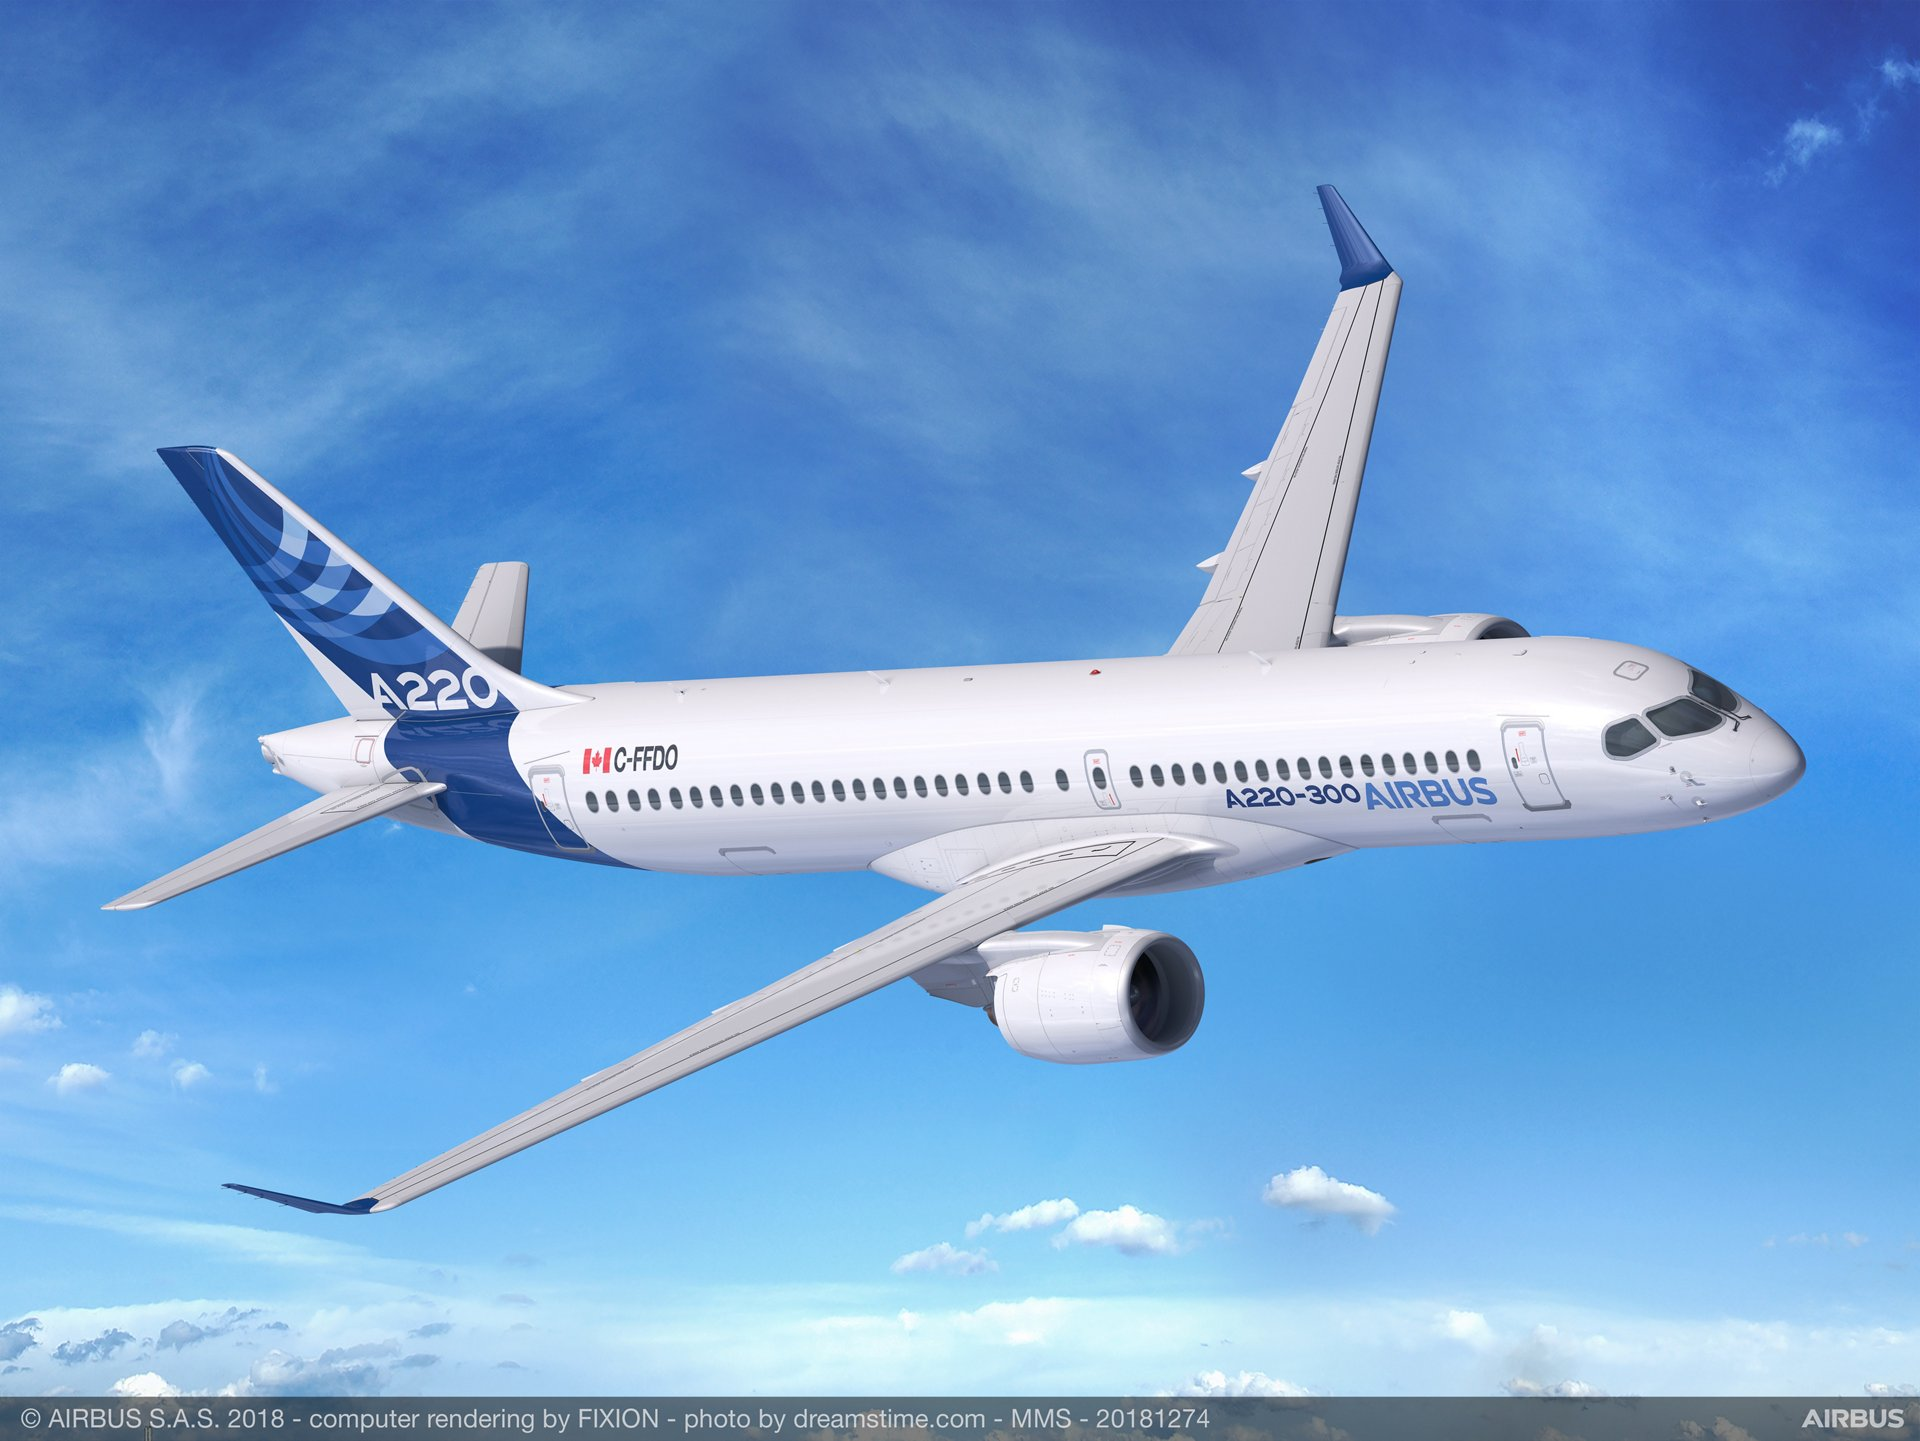 Powered by two Pratt & Whitney PurePower PW1500G geared turbofan engines, the Airbus A220-300 produces half the noise footprint of previous-generation aircraft, making it a true community-minded jetliner